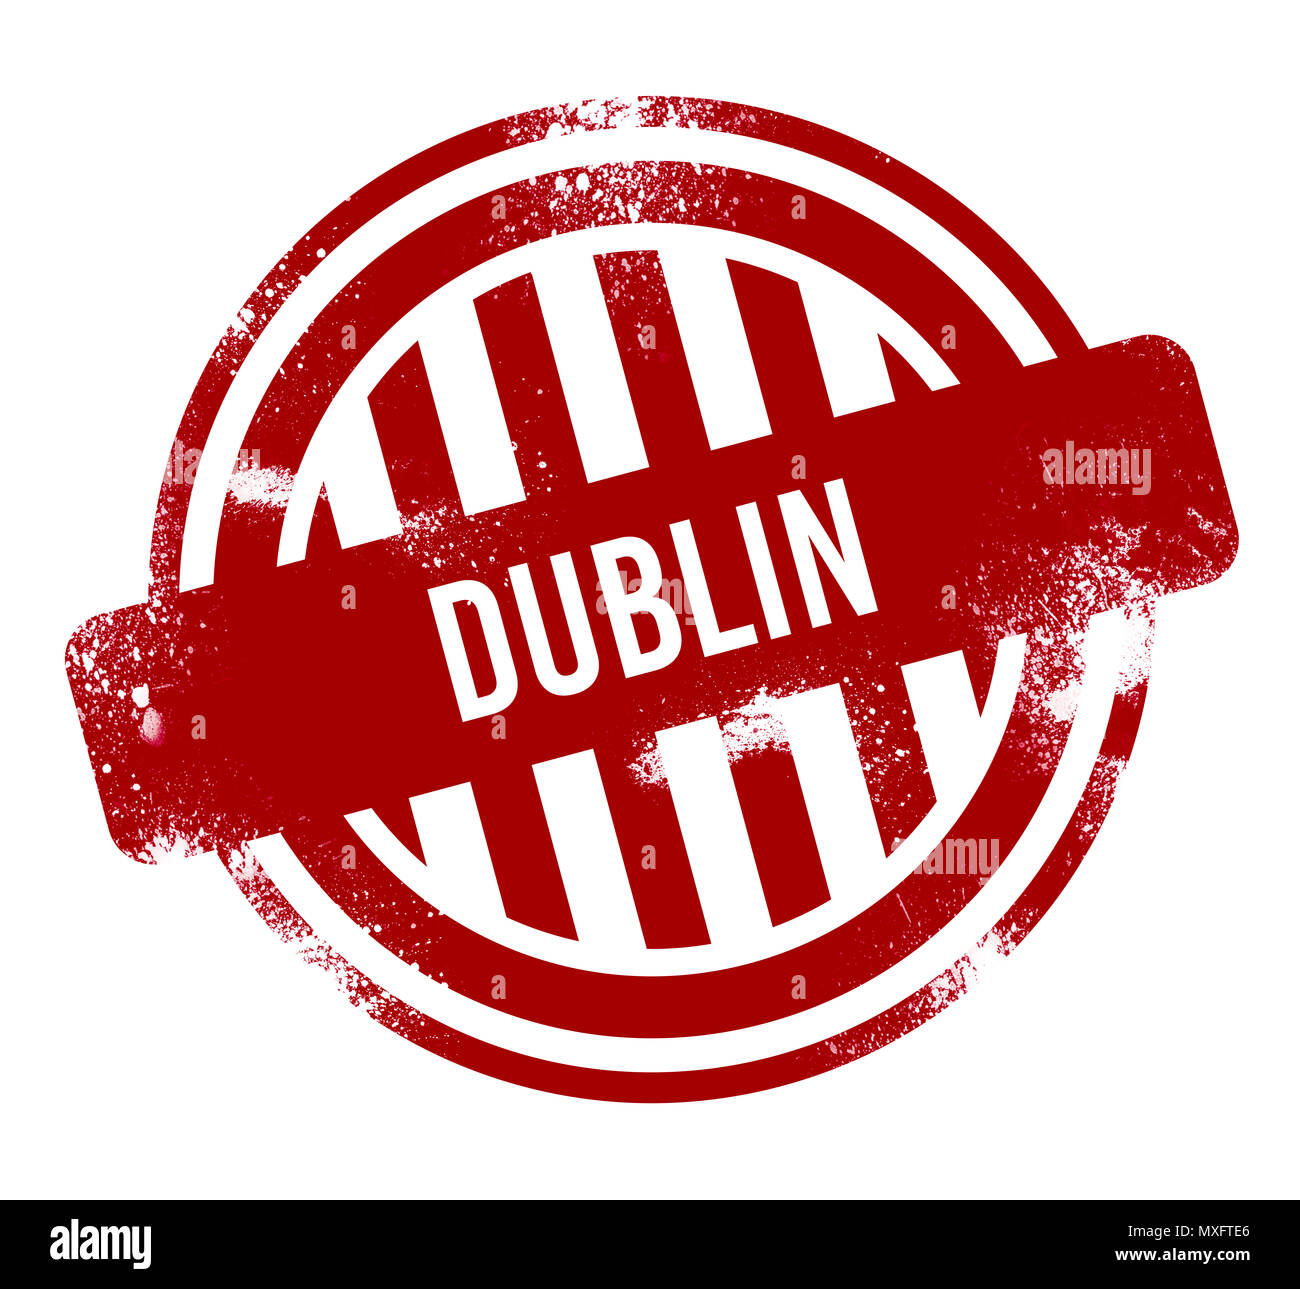 Dublin - Red grunge button, stamp - Stock Image